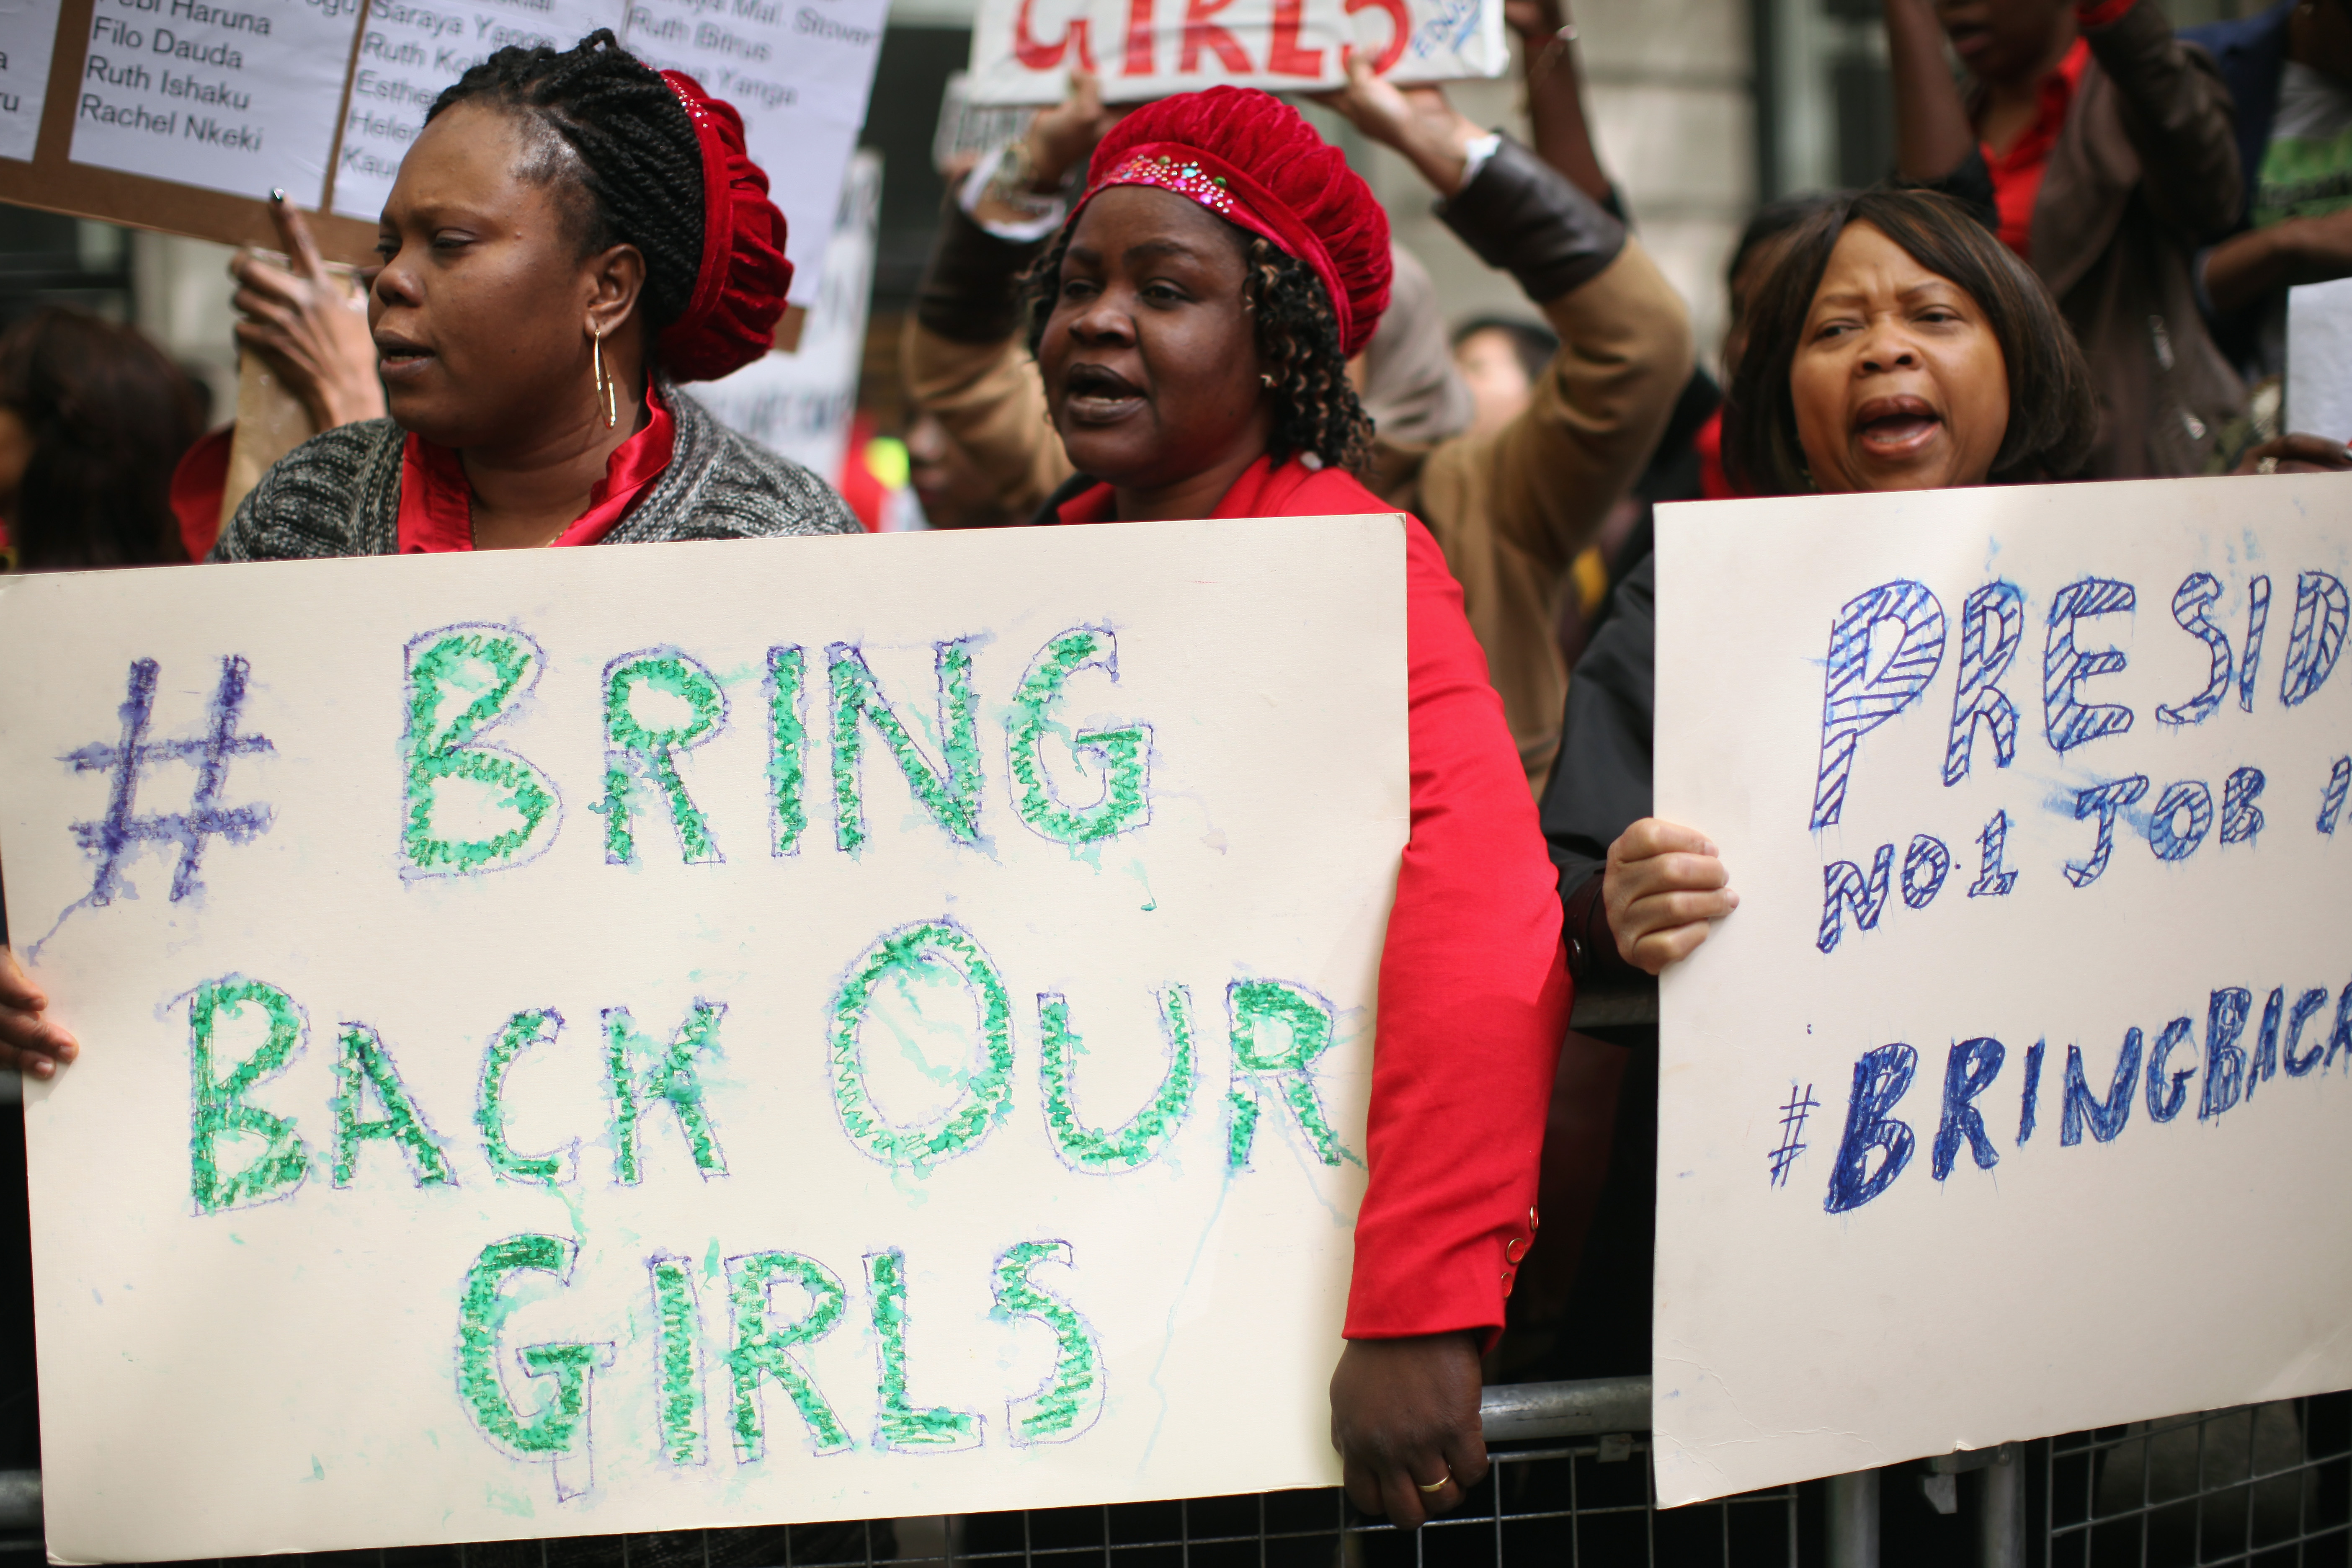 Protesters calling for the release of a group of abducted Nigerian schoolgirls gather outside Nigeria House on May 9, 2014 in London, England.   ( Dan Kitwood--Getty Images)